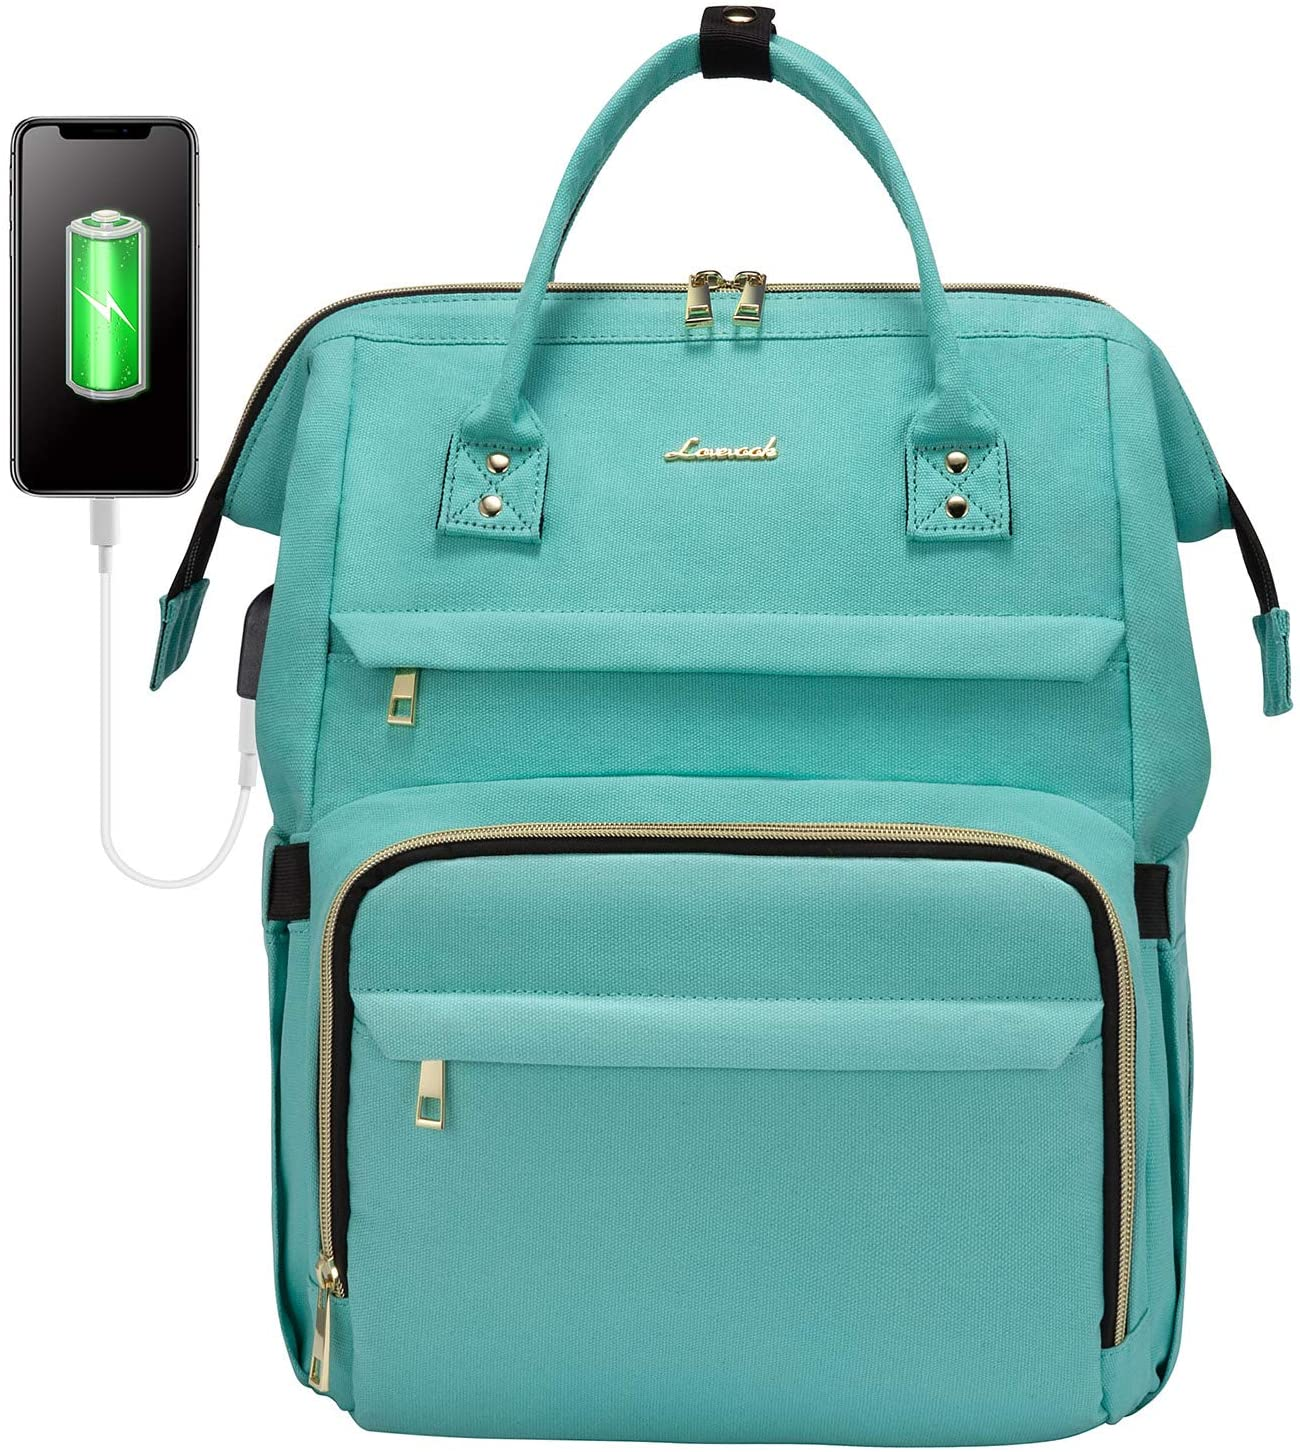 Laptop Backpack for Women Fashion Travel Bags Business Computer Purse Work Bag with USB Port, Light Green, 15.6-Inch